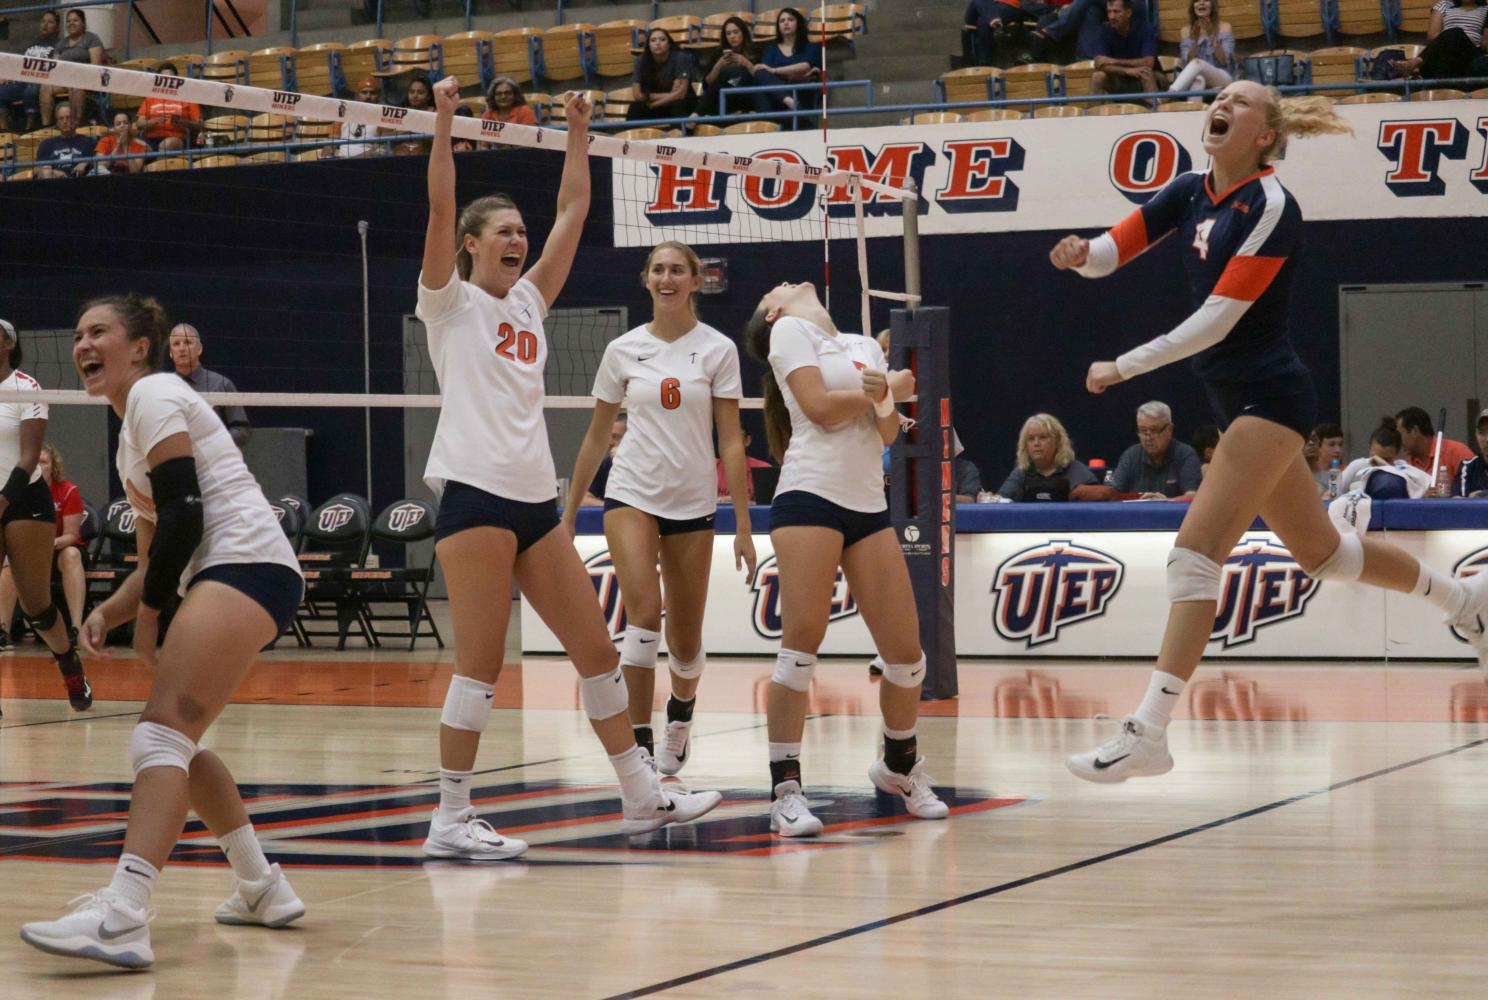 The Miners defeated Youngstown State 3-2 on Saturday afternoon.